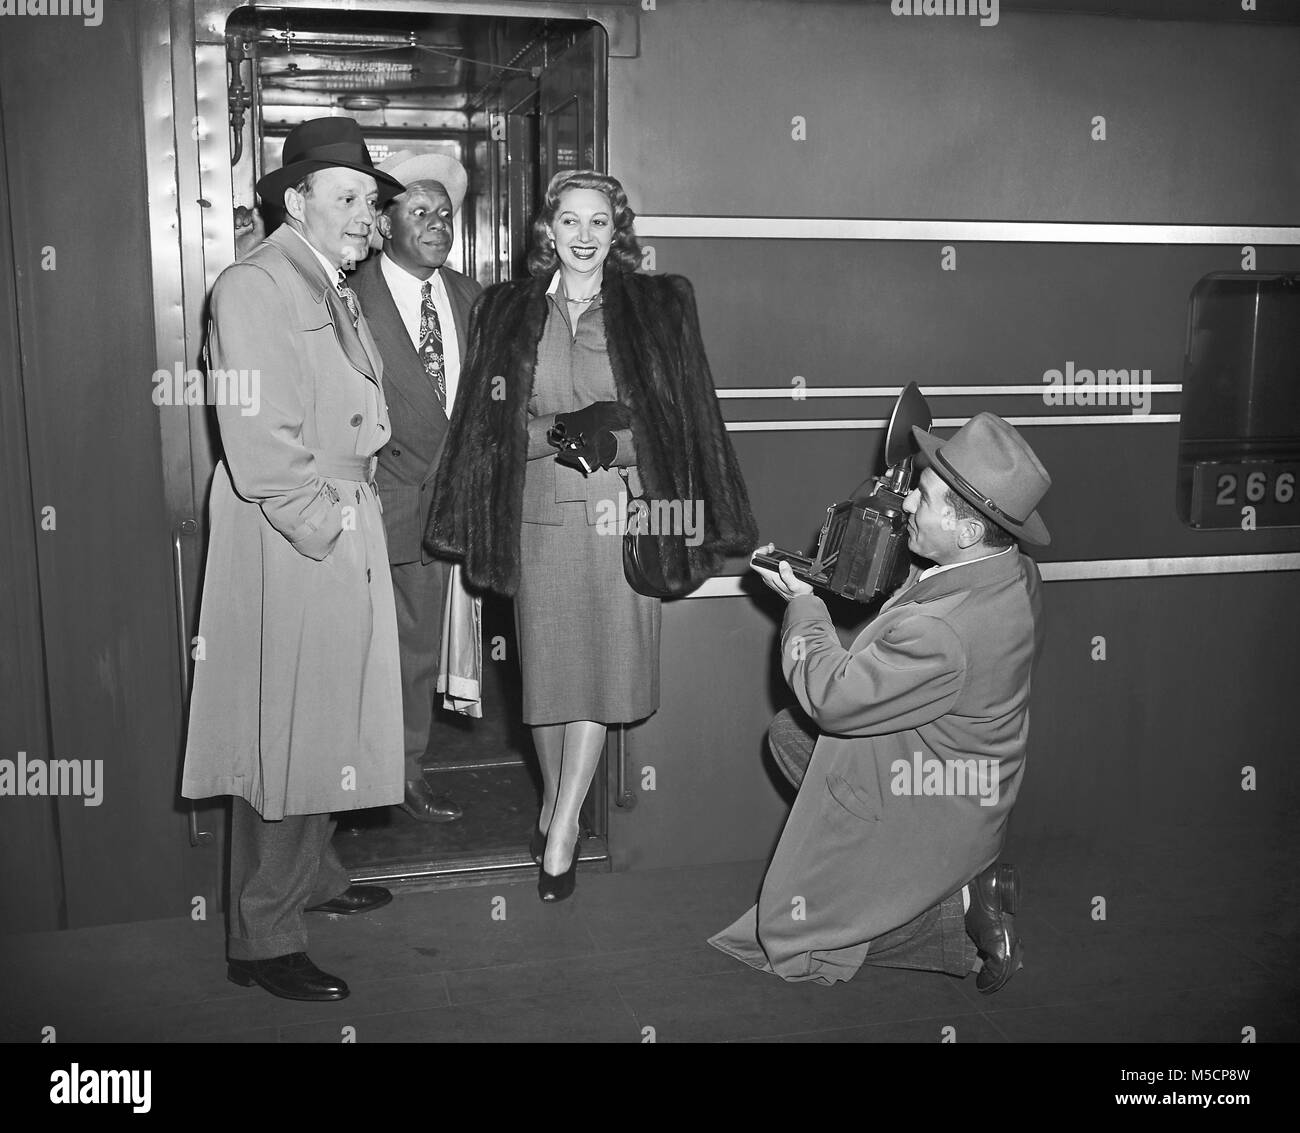 Jack Benny, Rochester, Mary Livingston & Weegee on the train platform in New York 1946. Stock Photo